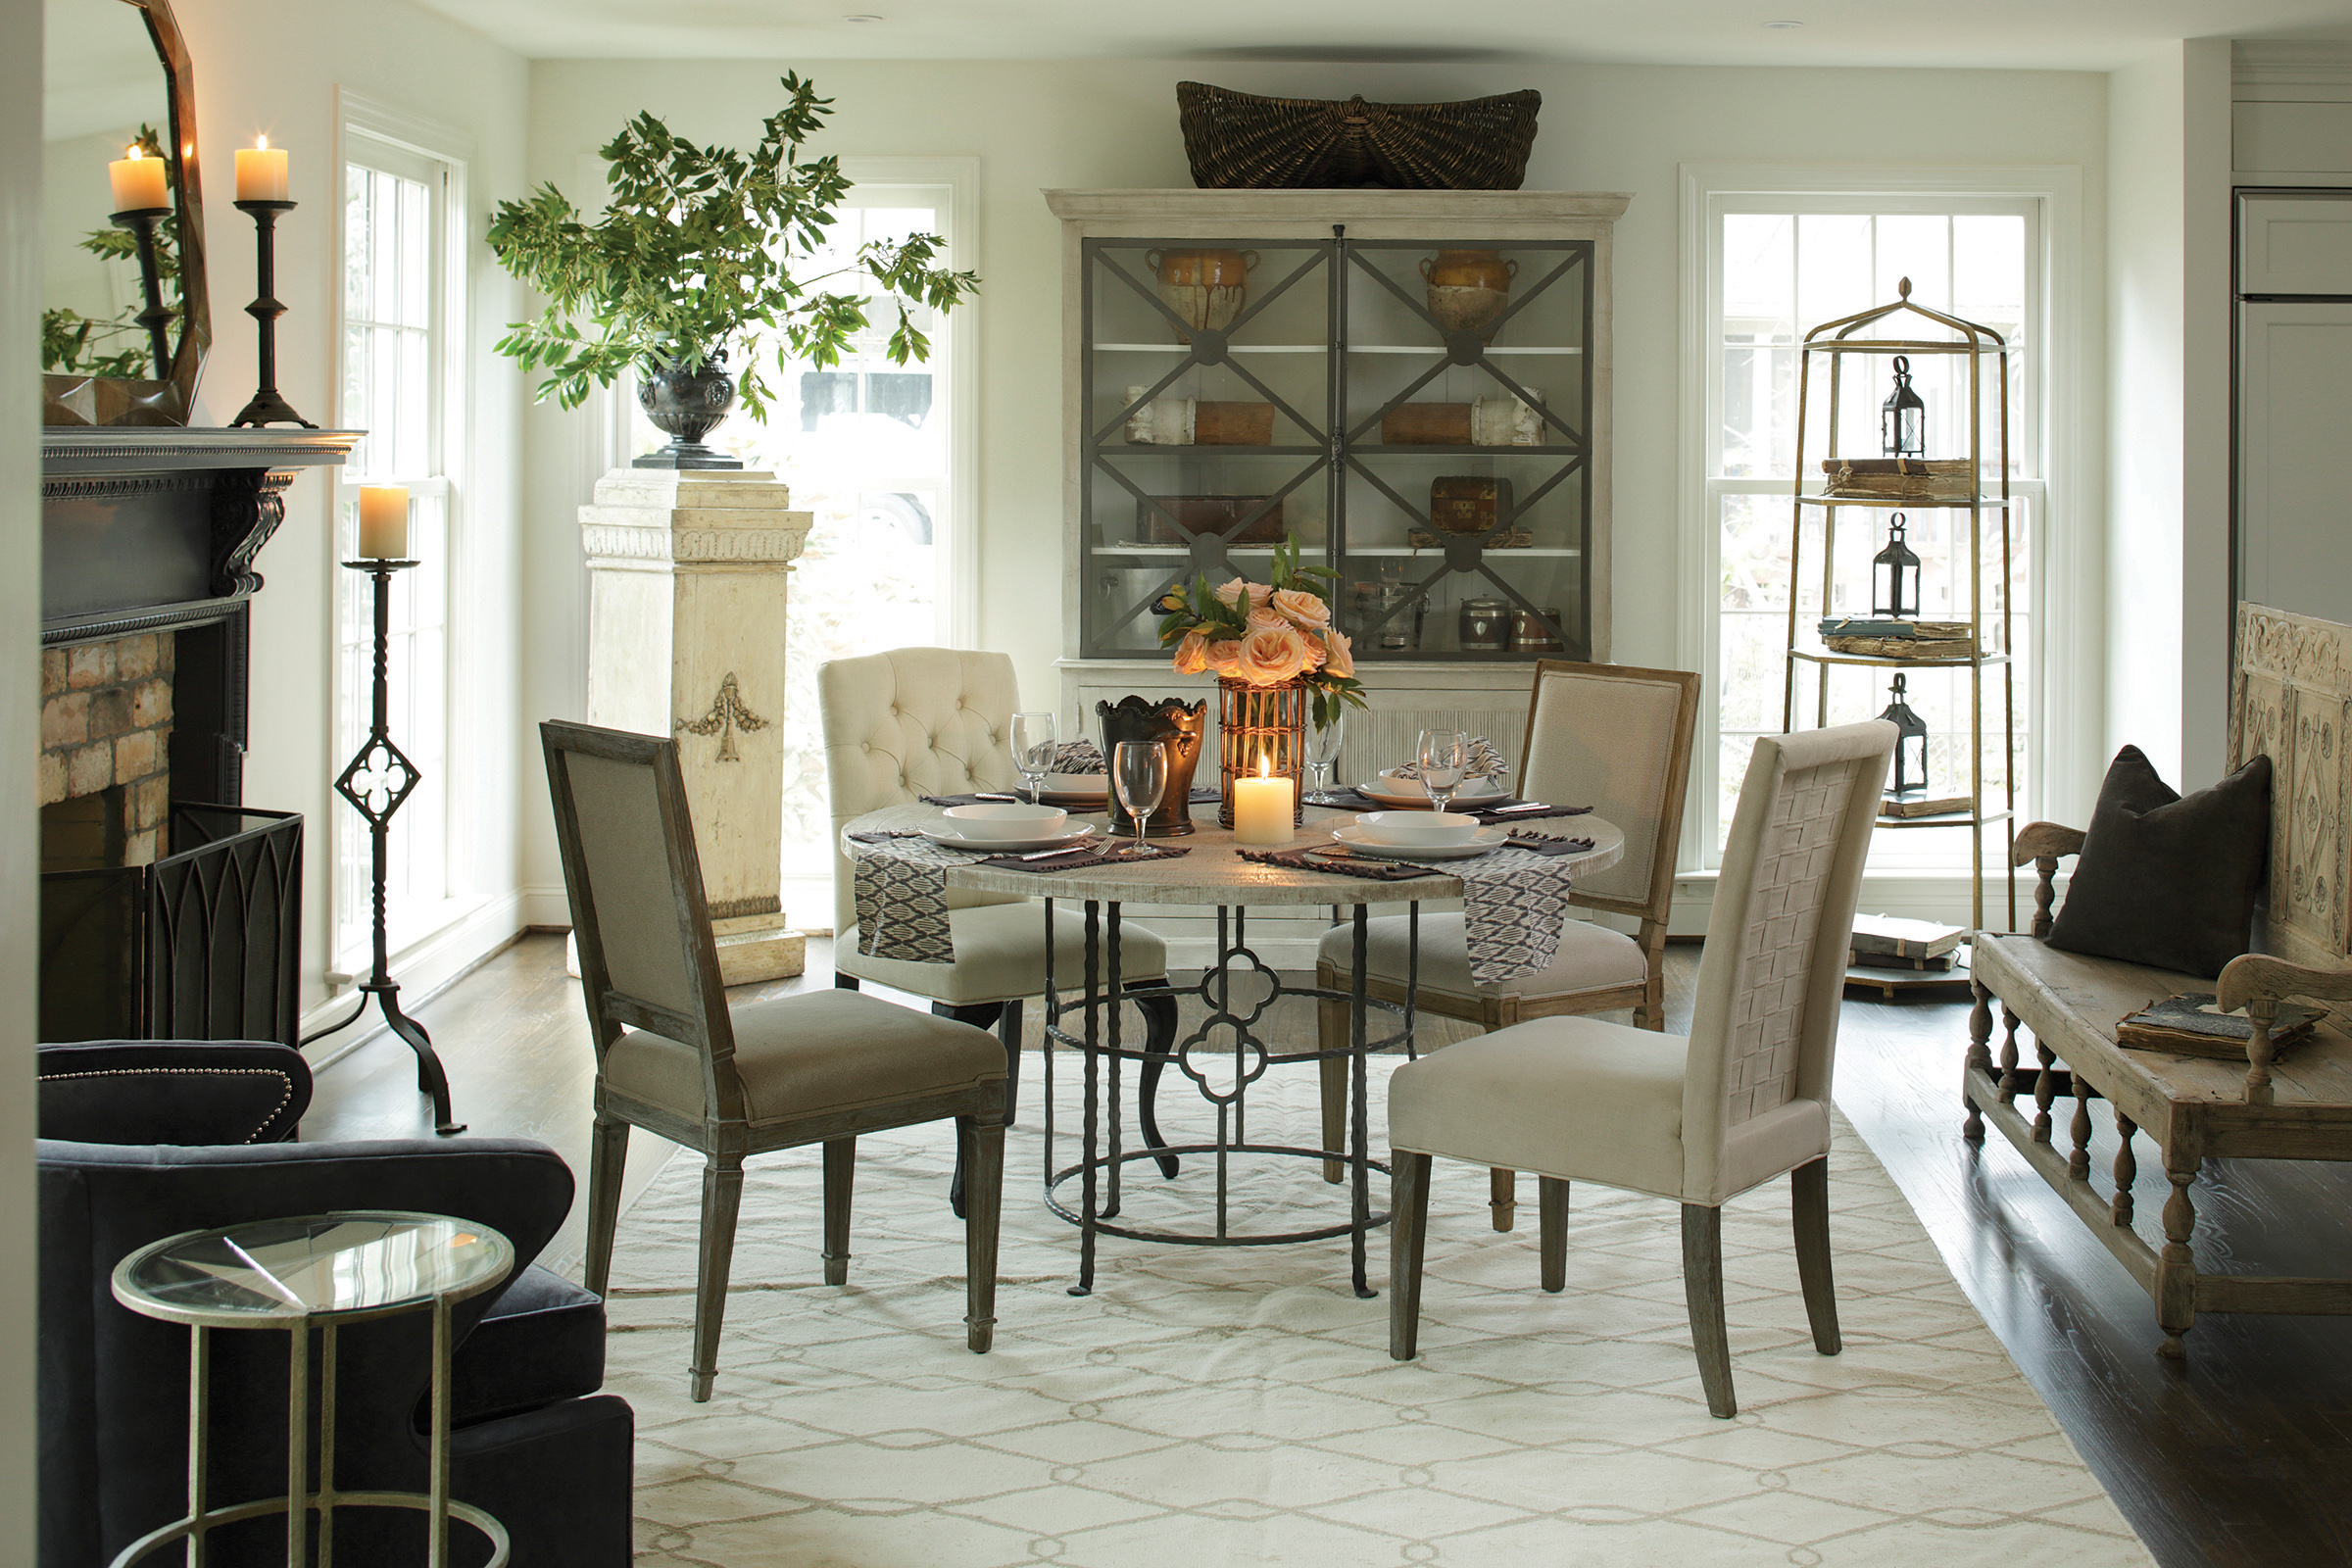 Modern traditional dining room - Conversational Chic Vintage Modern Meets Eclectic Furniture